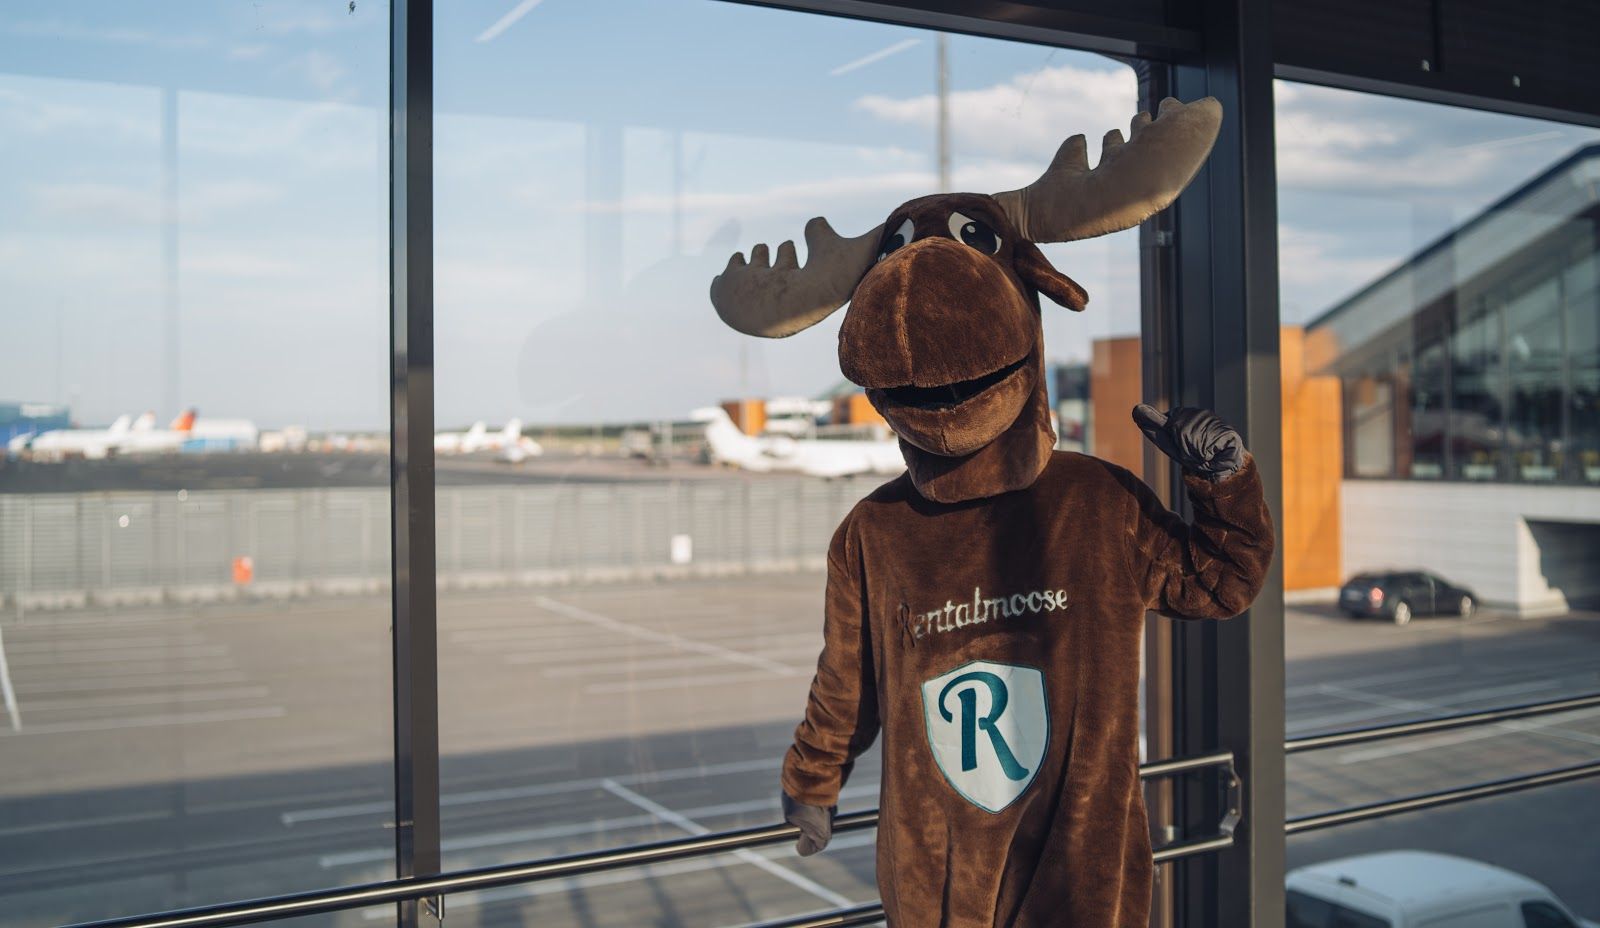 Rental Moose mascot posing at Tallinn airport, airplanes and runway behind glass panel. Rental Moose is a global car rental broker which will help you get the best deal on your next rental car.